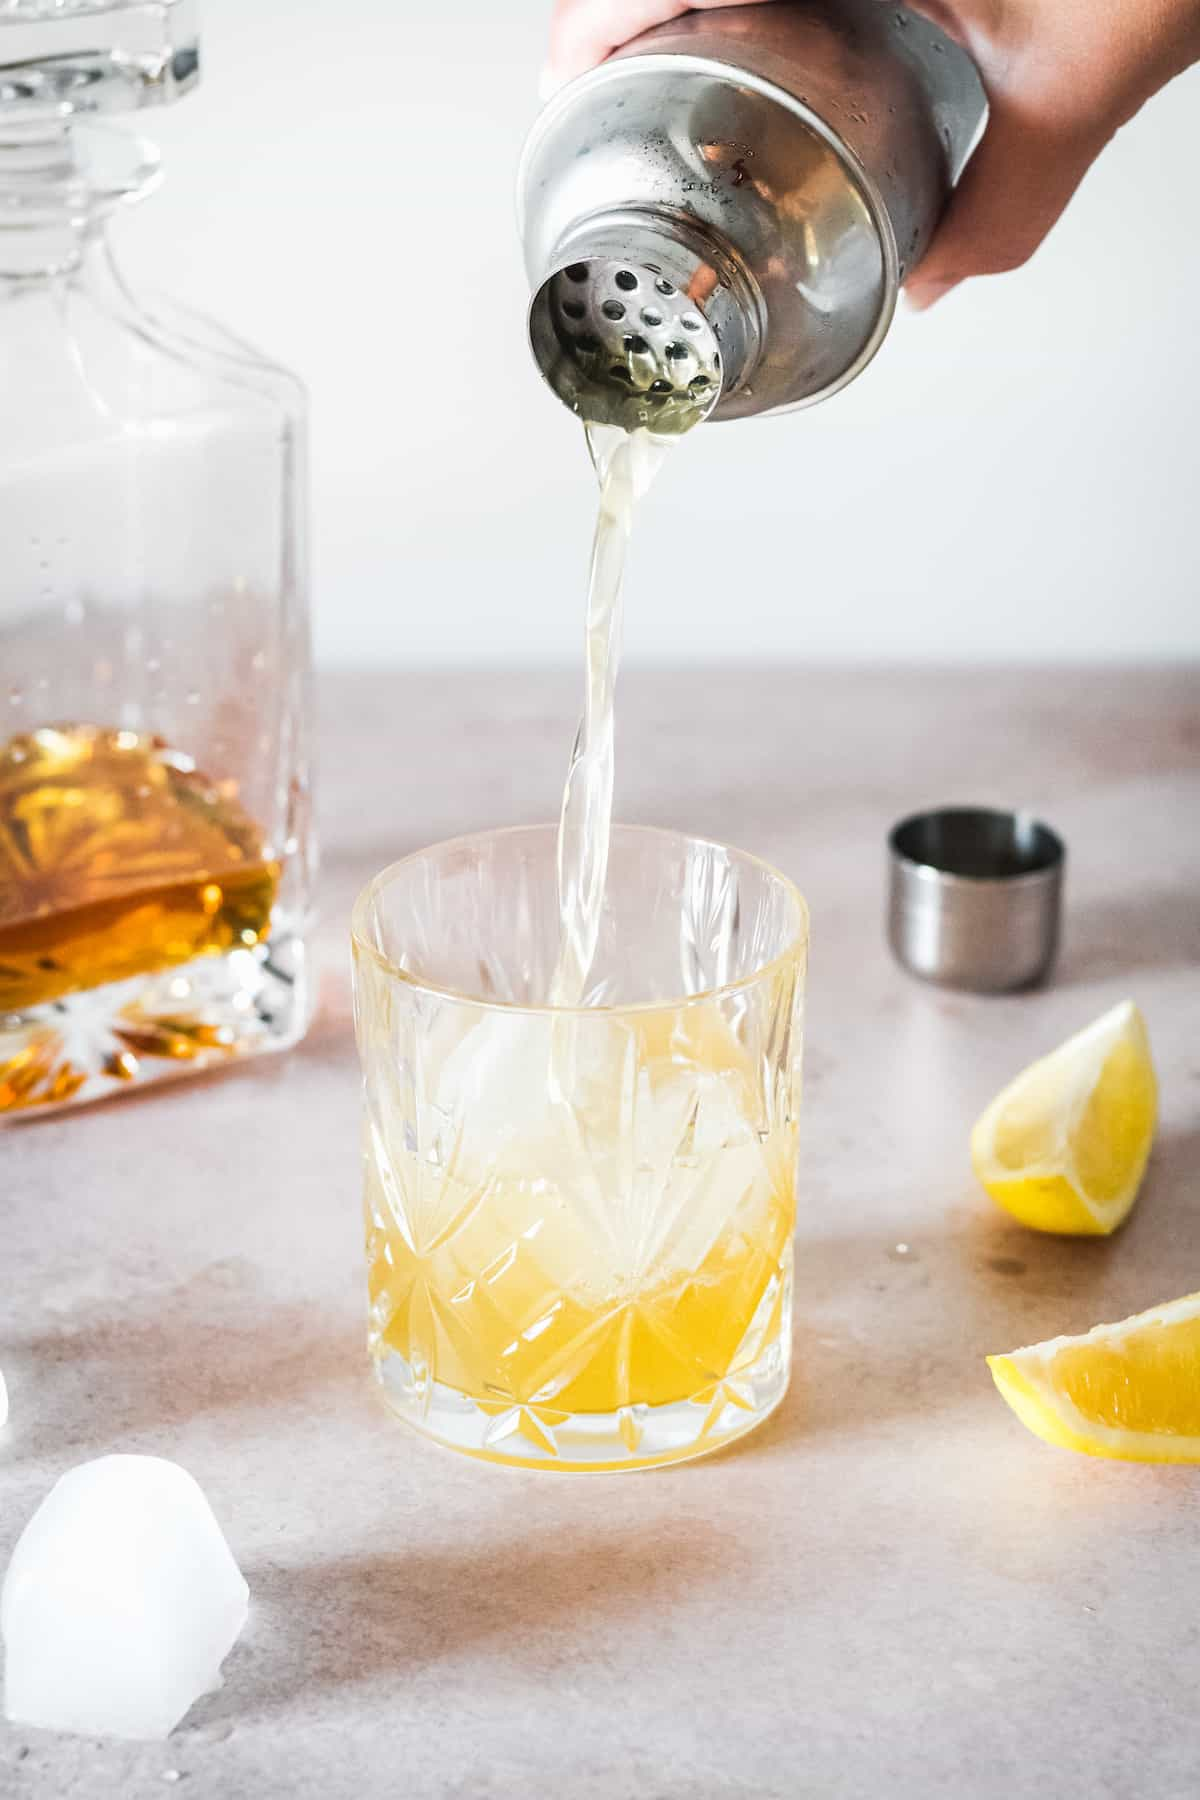 Bourbon sour being poured into a glass over ice